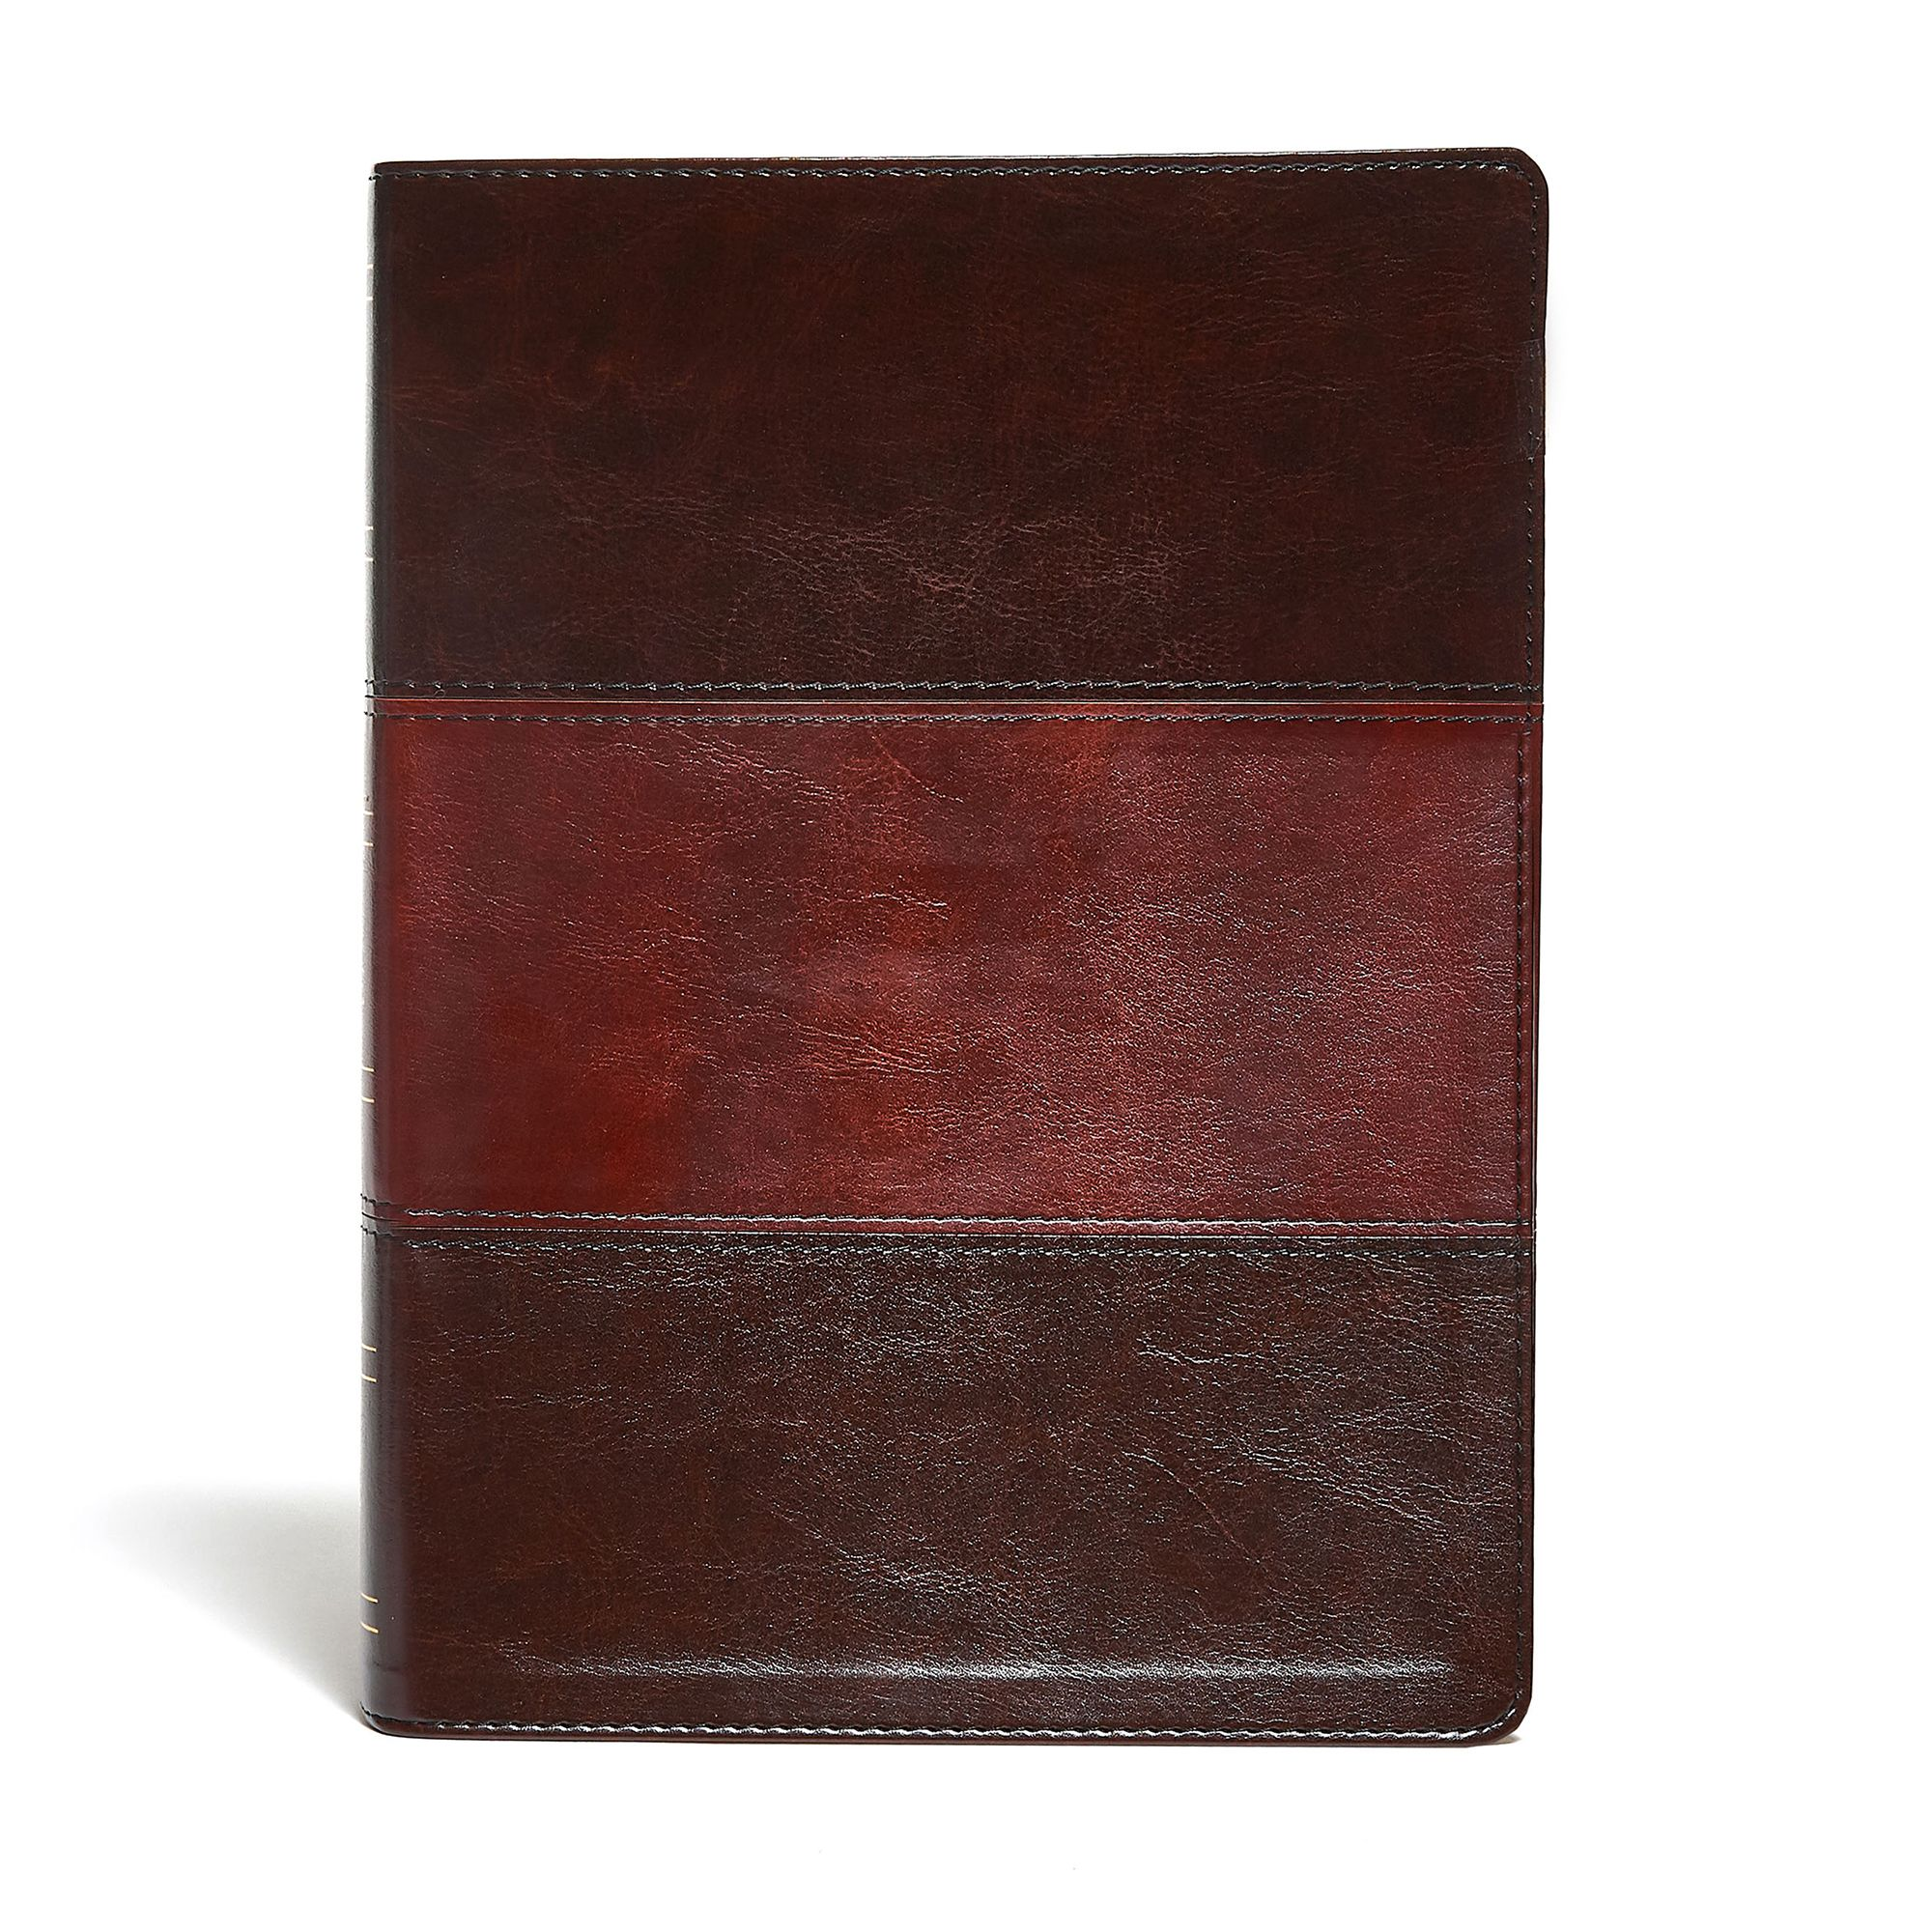 KJV Study Bible Large Print Edition, Saddle Brown LeatherTouch Indexed